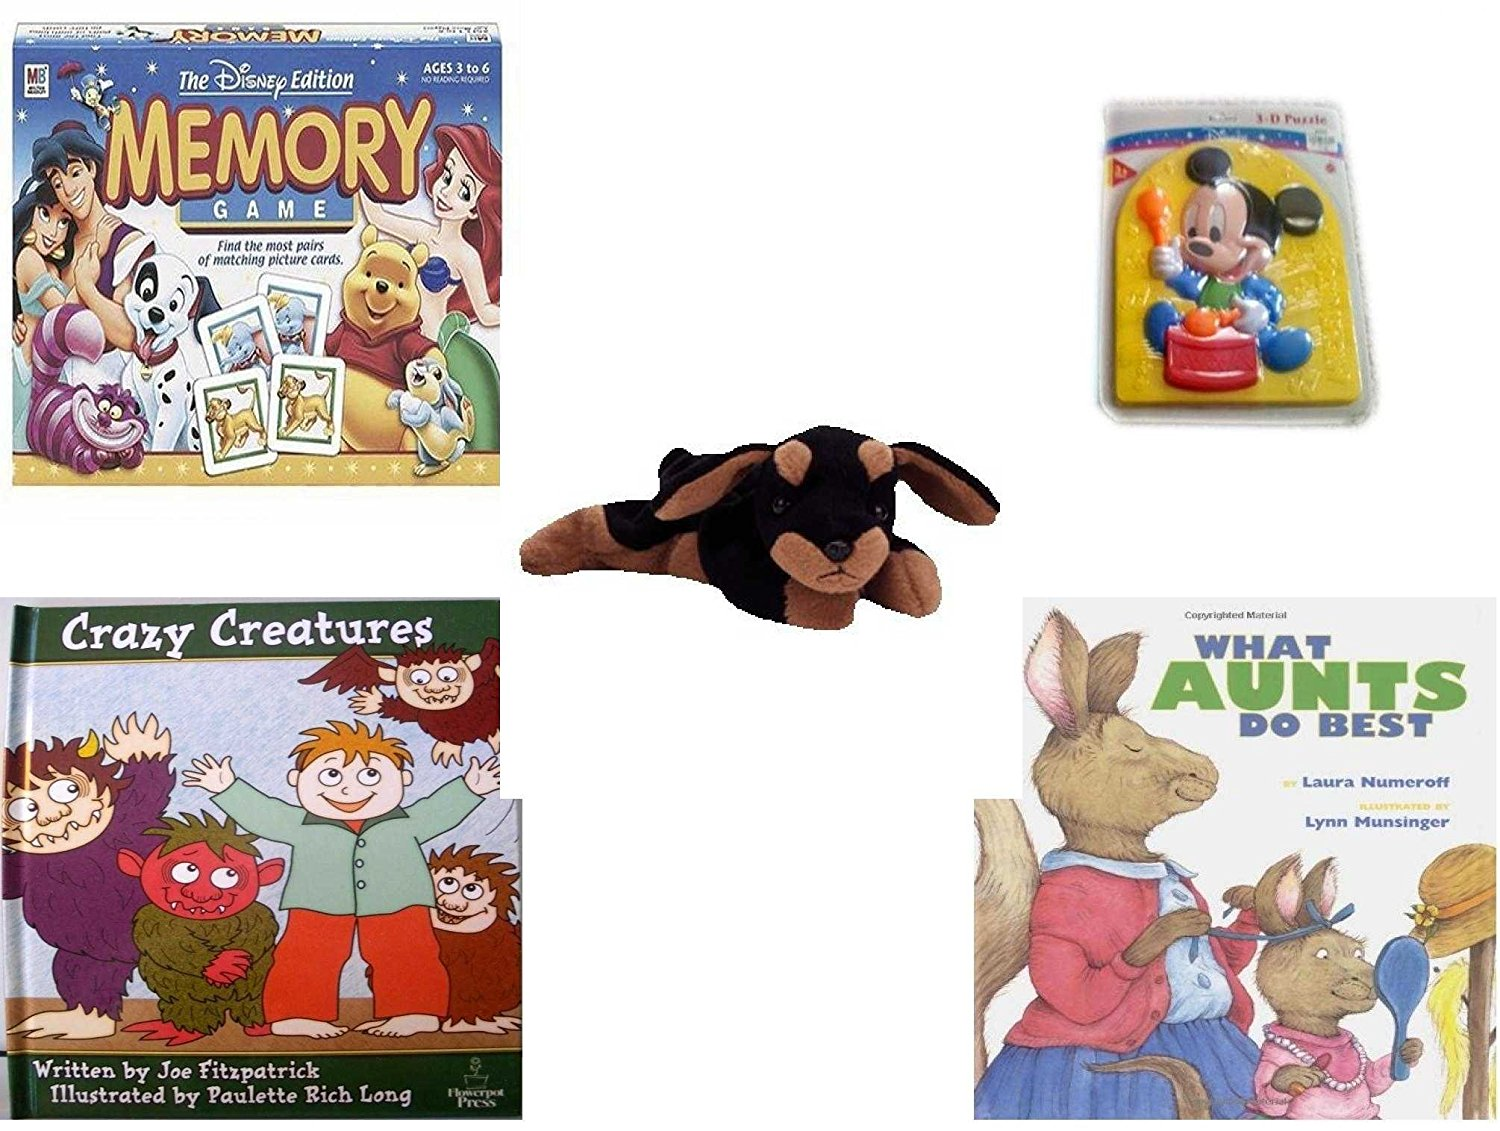 Children's Gift Bundle - Ages 3-5 [5 Piece] - The Disney Edition Memory Game - Preschool Disney Baby Mickey 3D Puzzle Toy - Ty Beanie Baby - Doby the Doberman - Crazy Creatures Hardcover Book - What